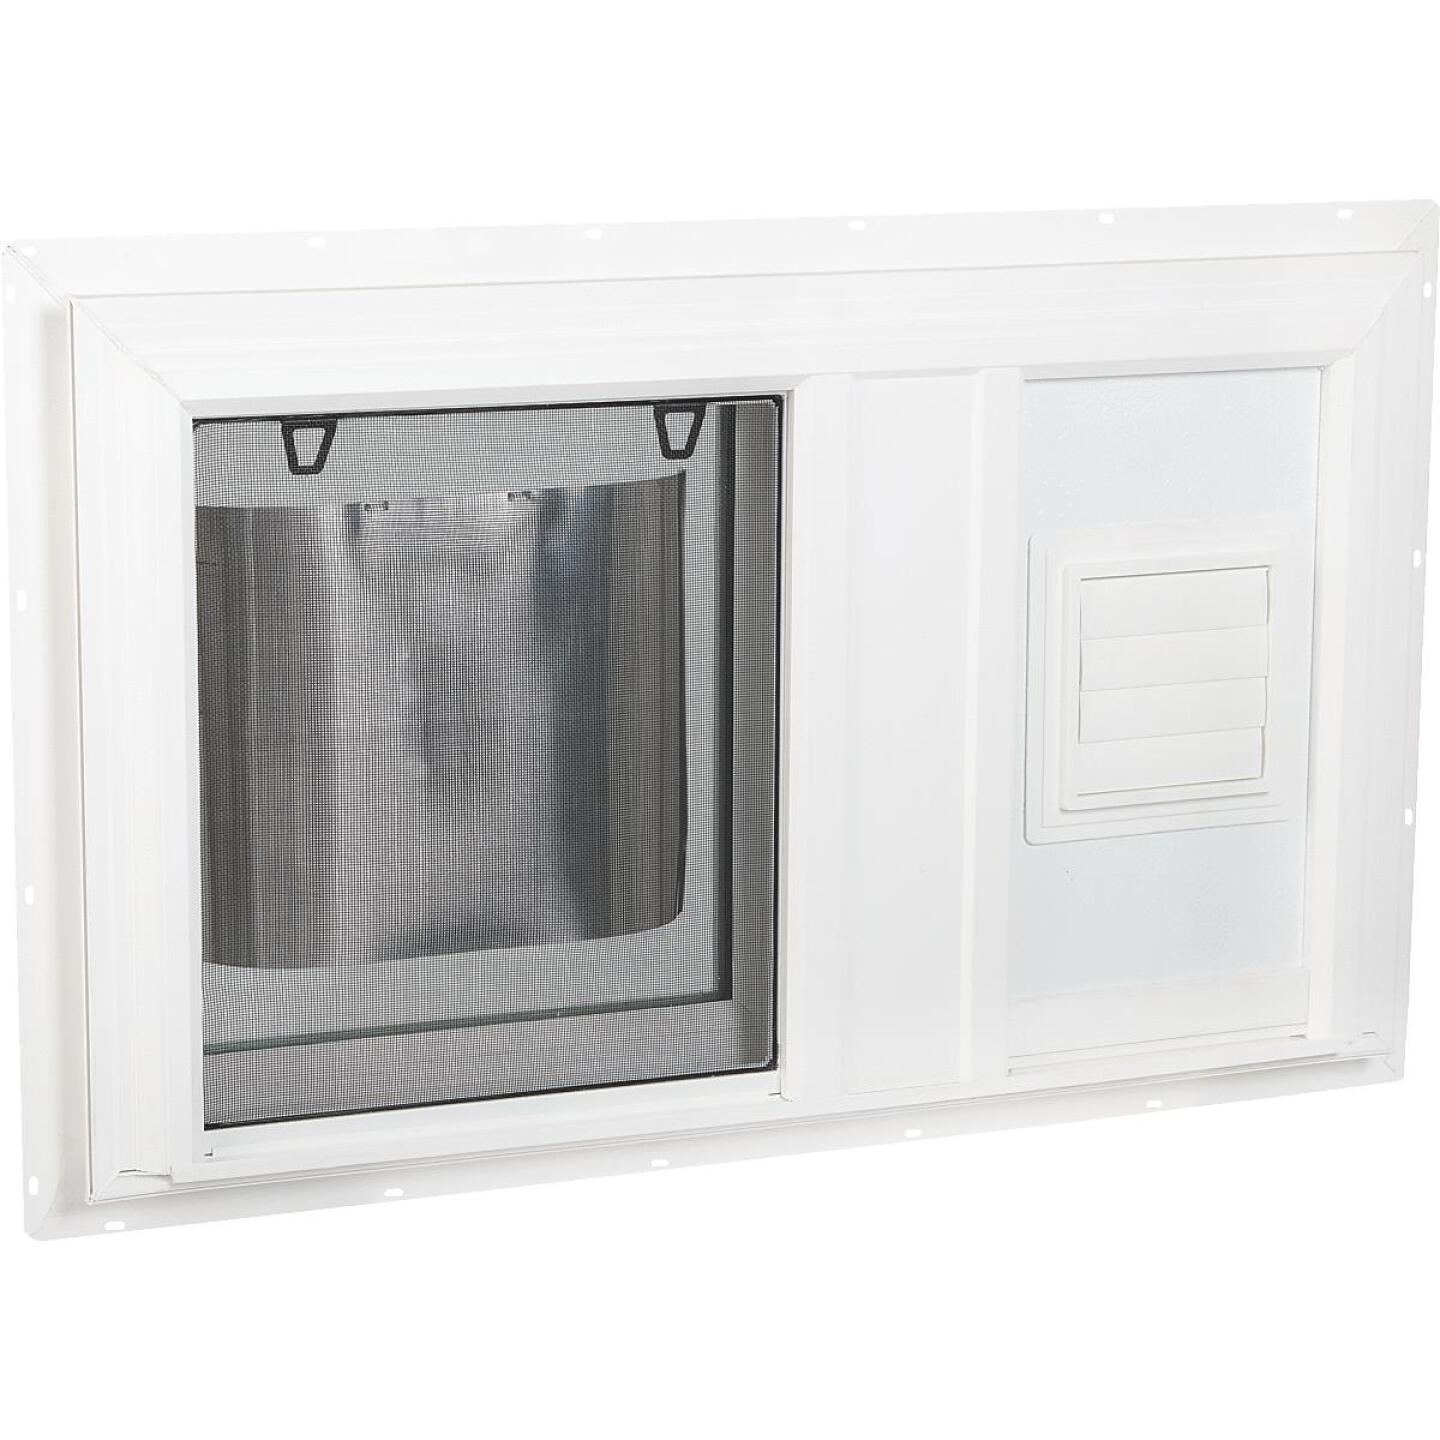 Interstate Model 5100 32 In. W. x 19 In. H. White Vinyl South Glass Pack Hopper Basement Window with Dryer Vent Image 1